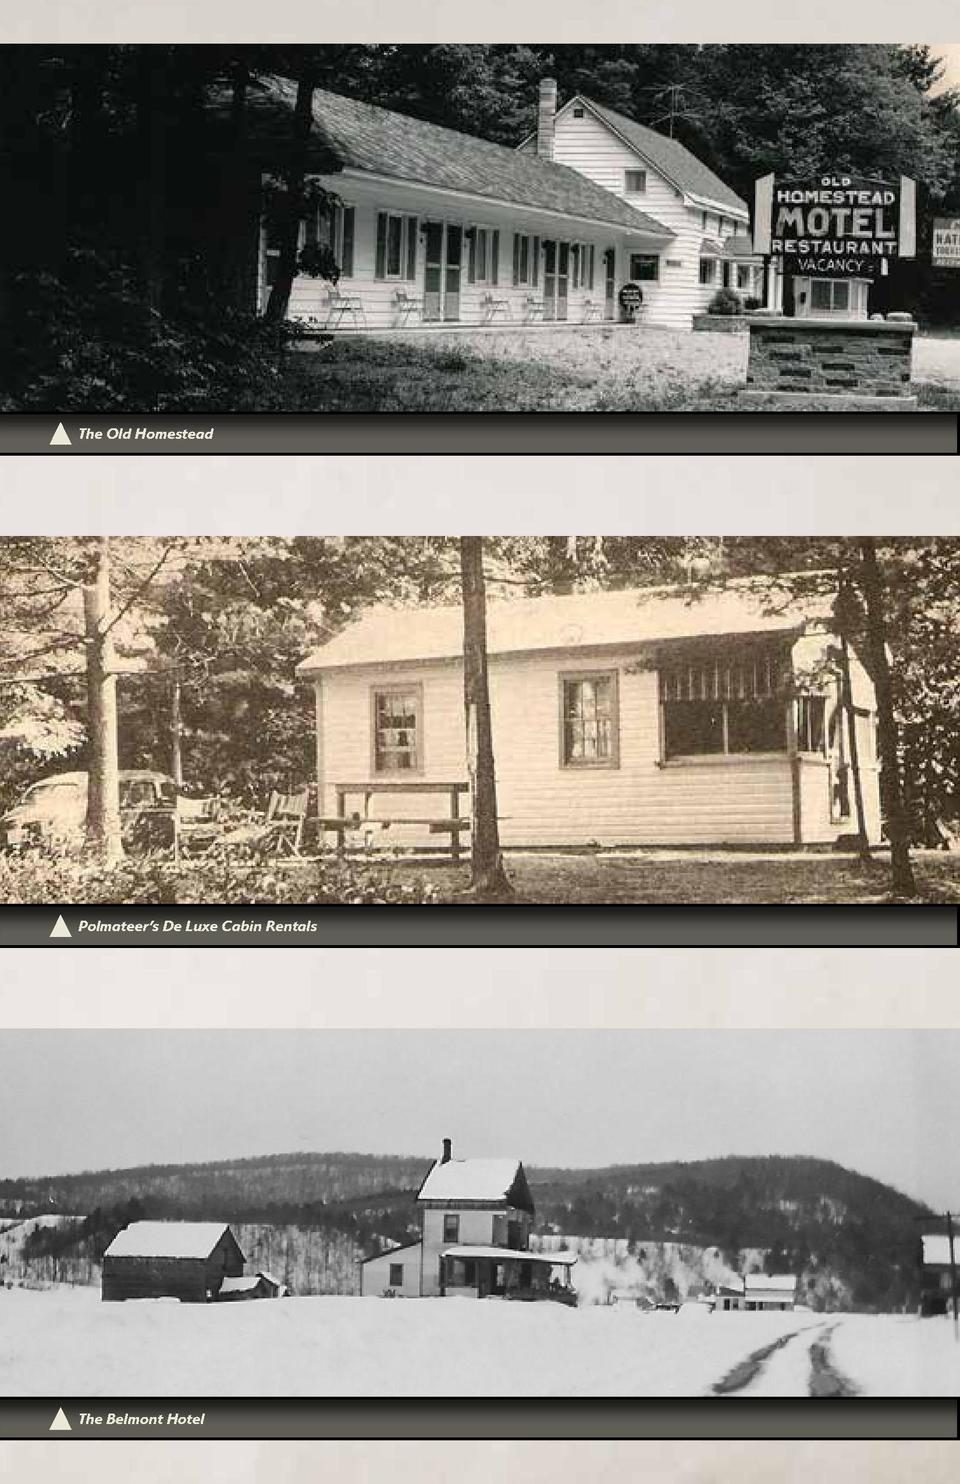 The Old Homestead  Polmateer   s De Luxe Cabin Rentals  32  The Belmont Hotel